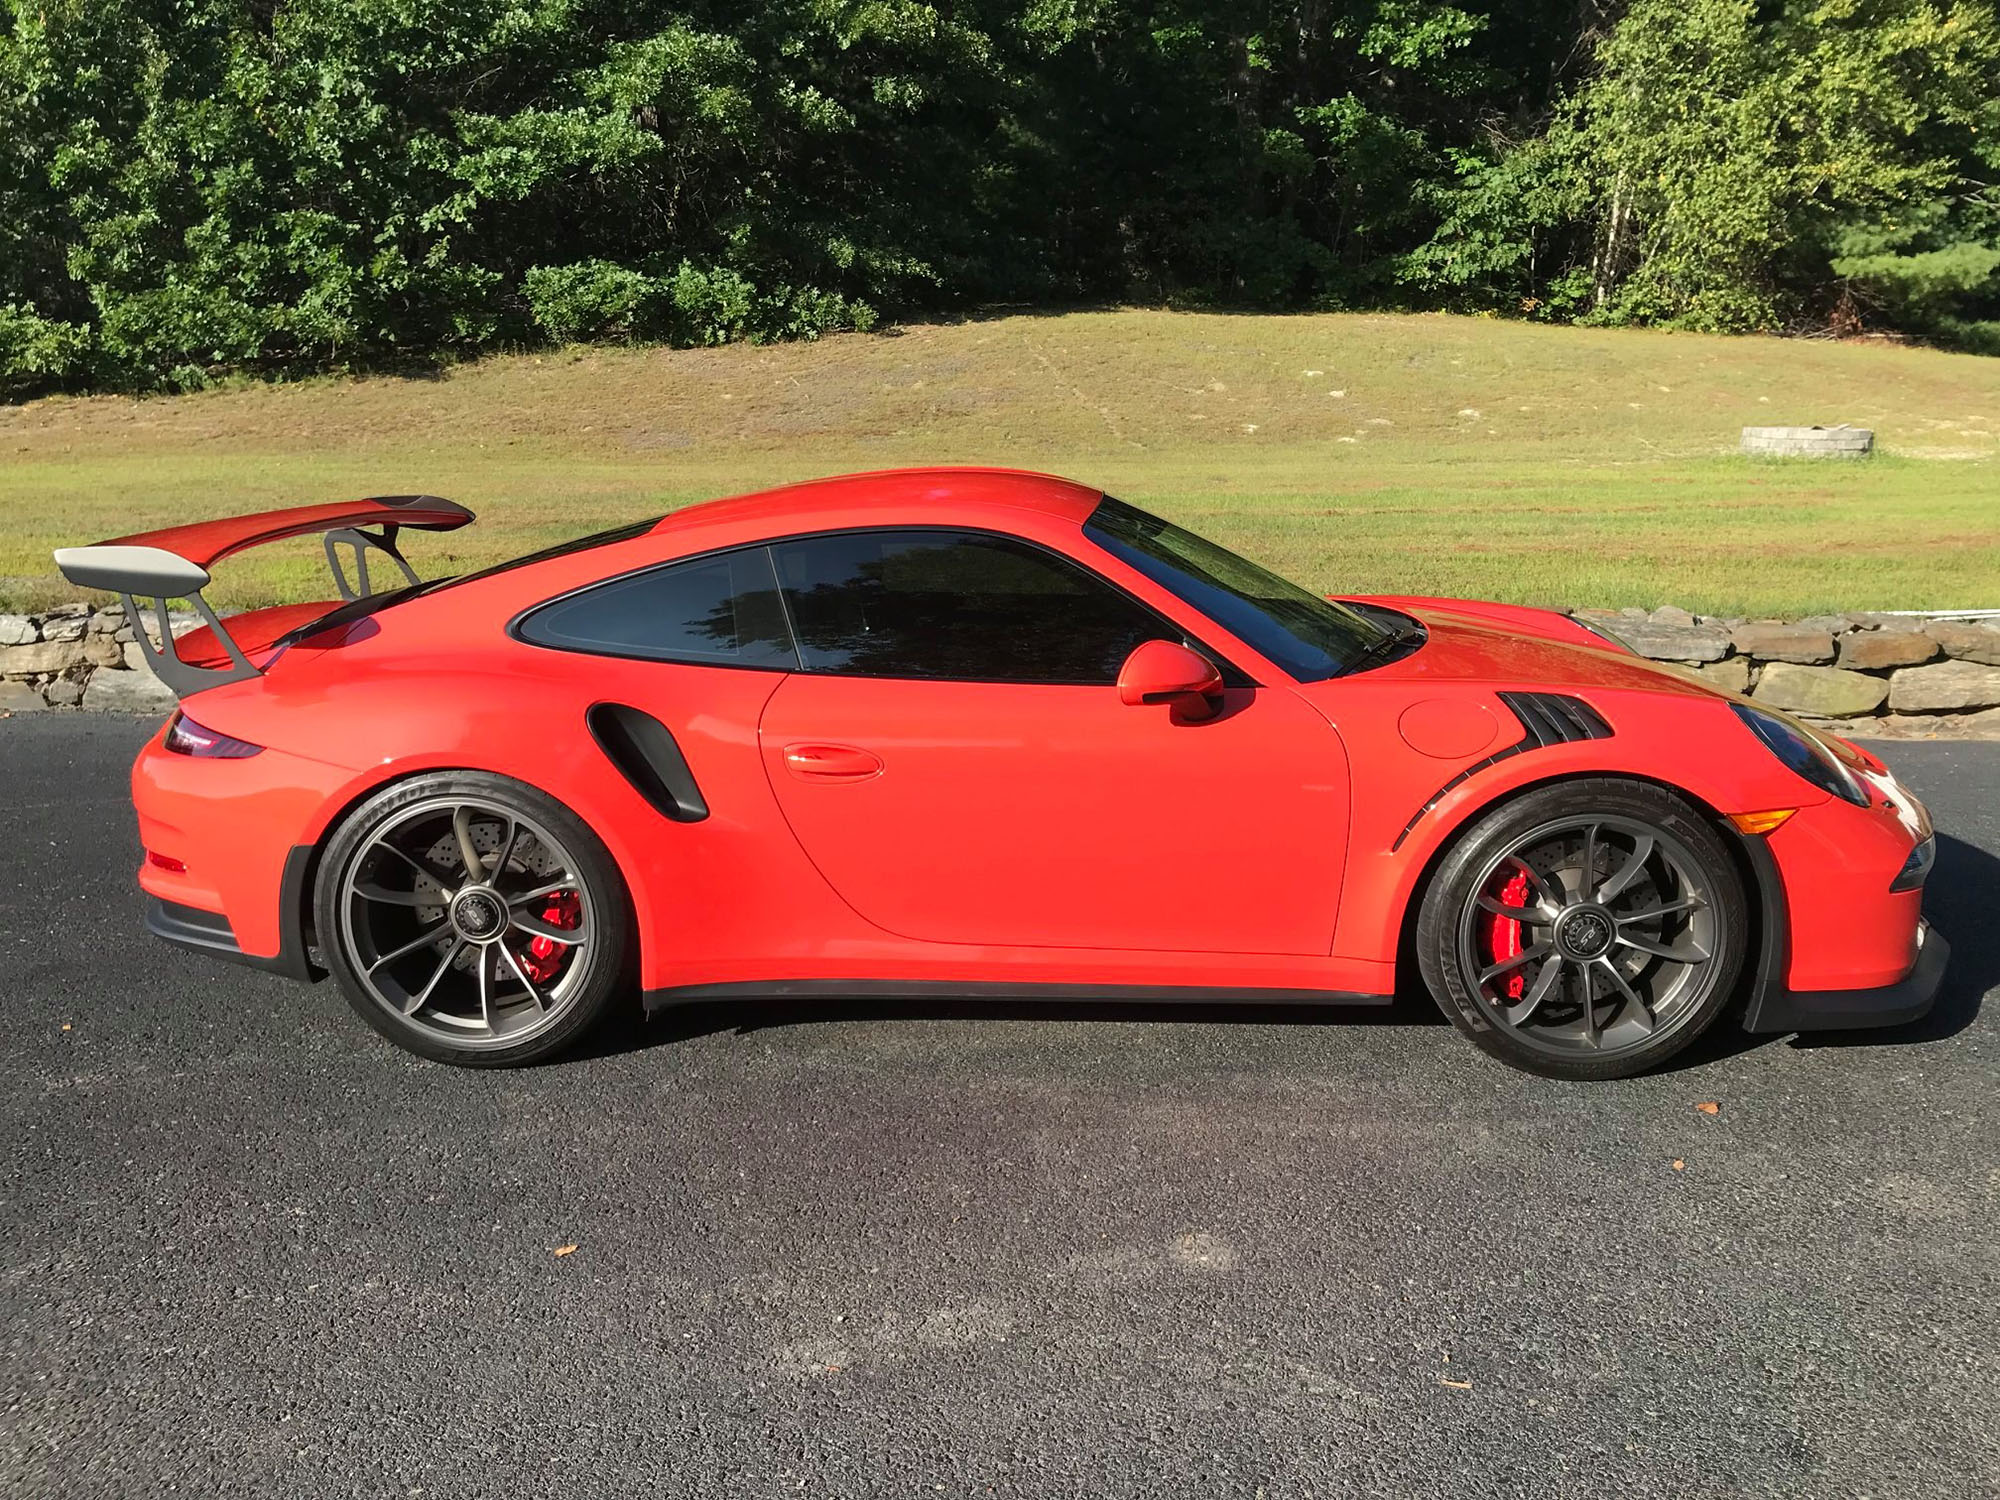 2016 Porsche 911 GT3 RS in Lava Orange